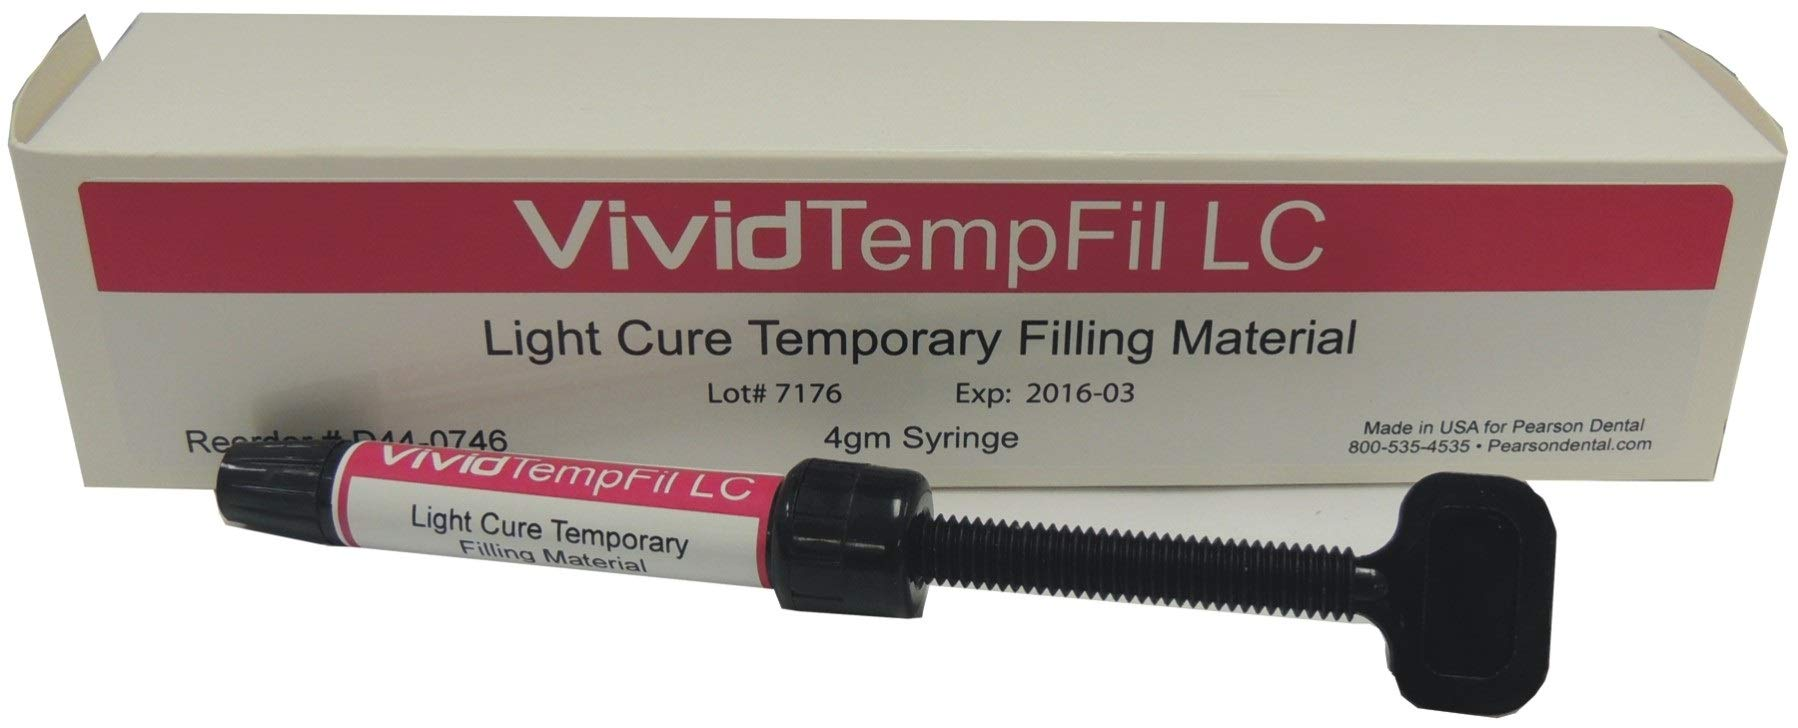 Vivid Temporary Filling Material Light Cure 4gm Syringe by Pearson Dental